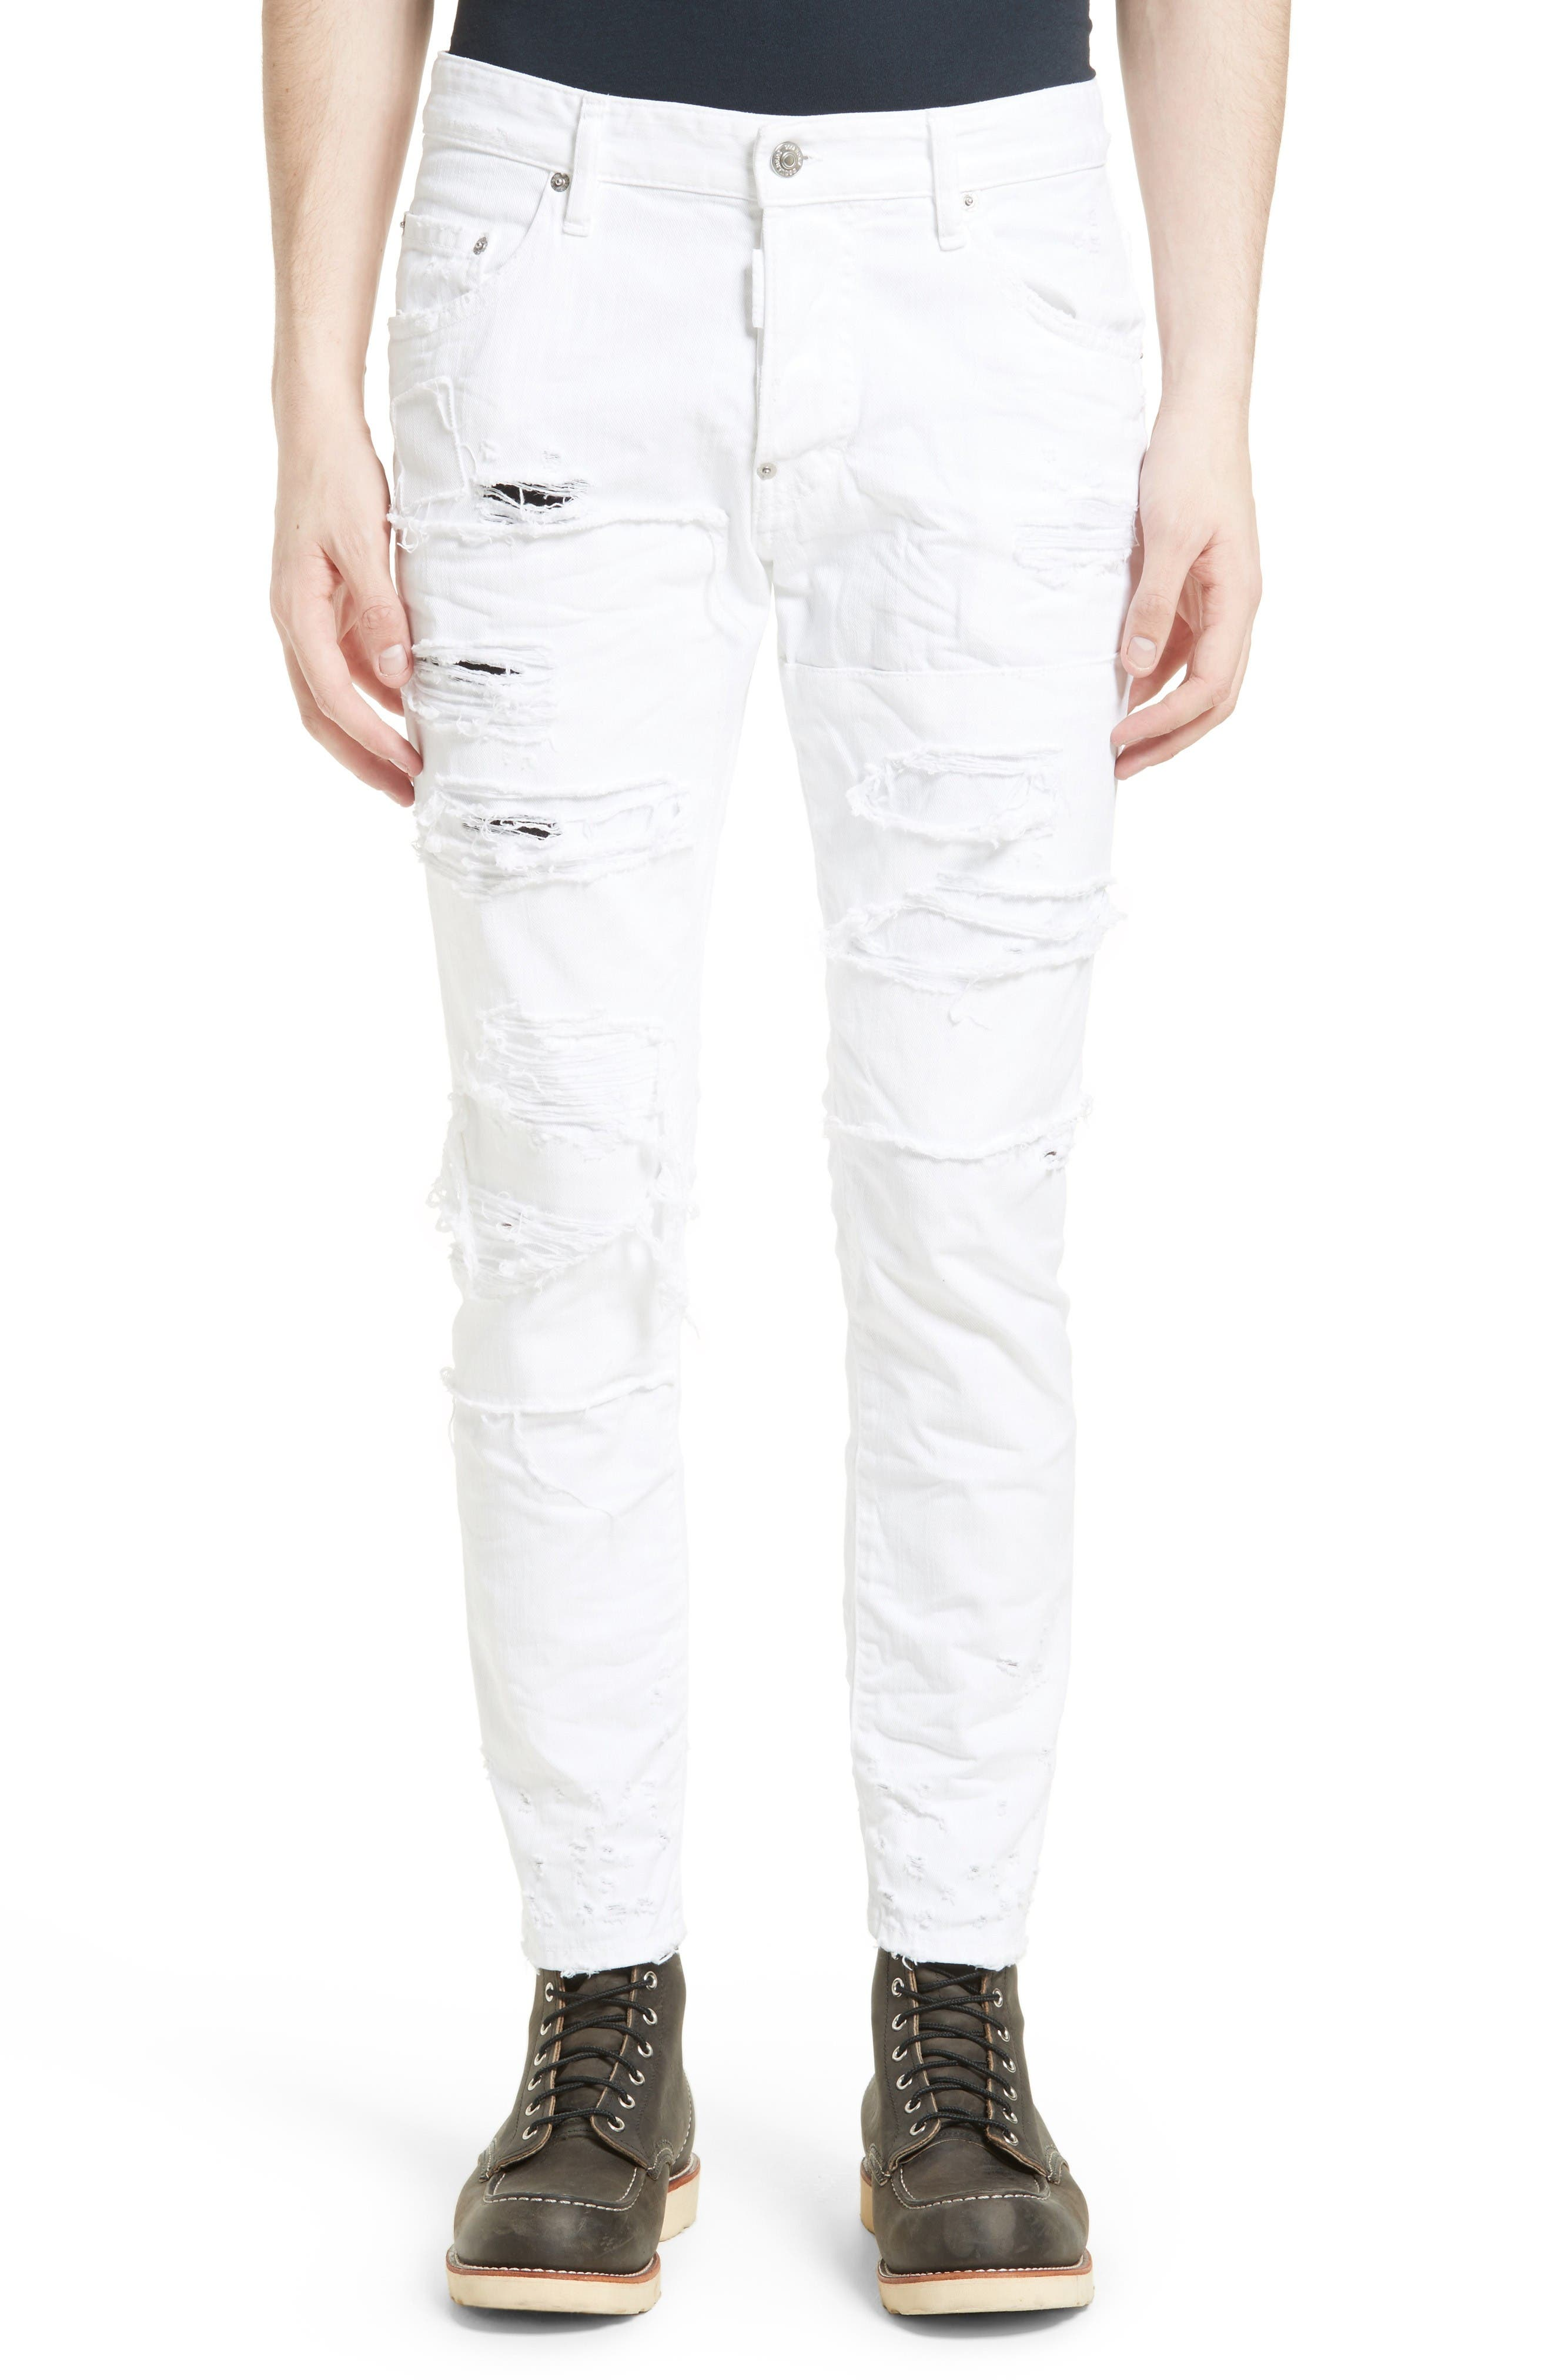 Alternate Image 1 Selected - Dsquared2 Shredded Jeans